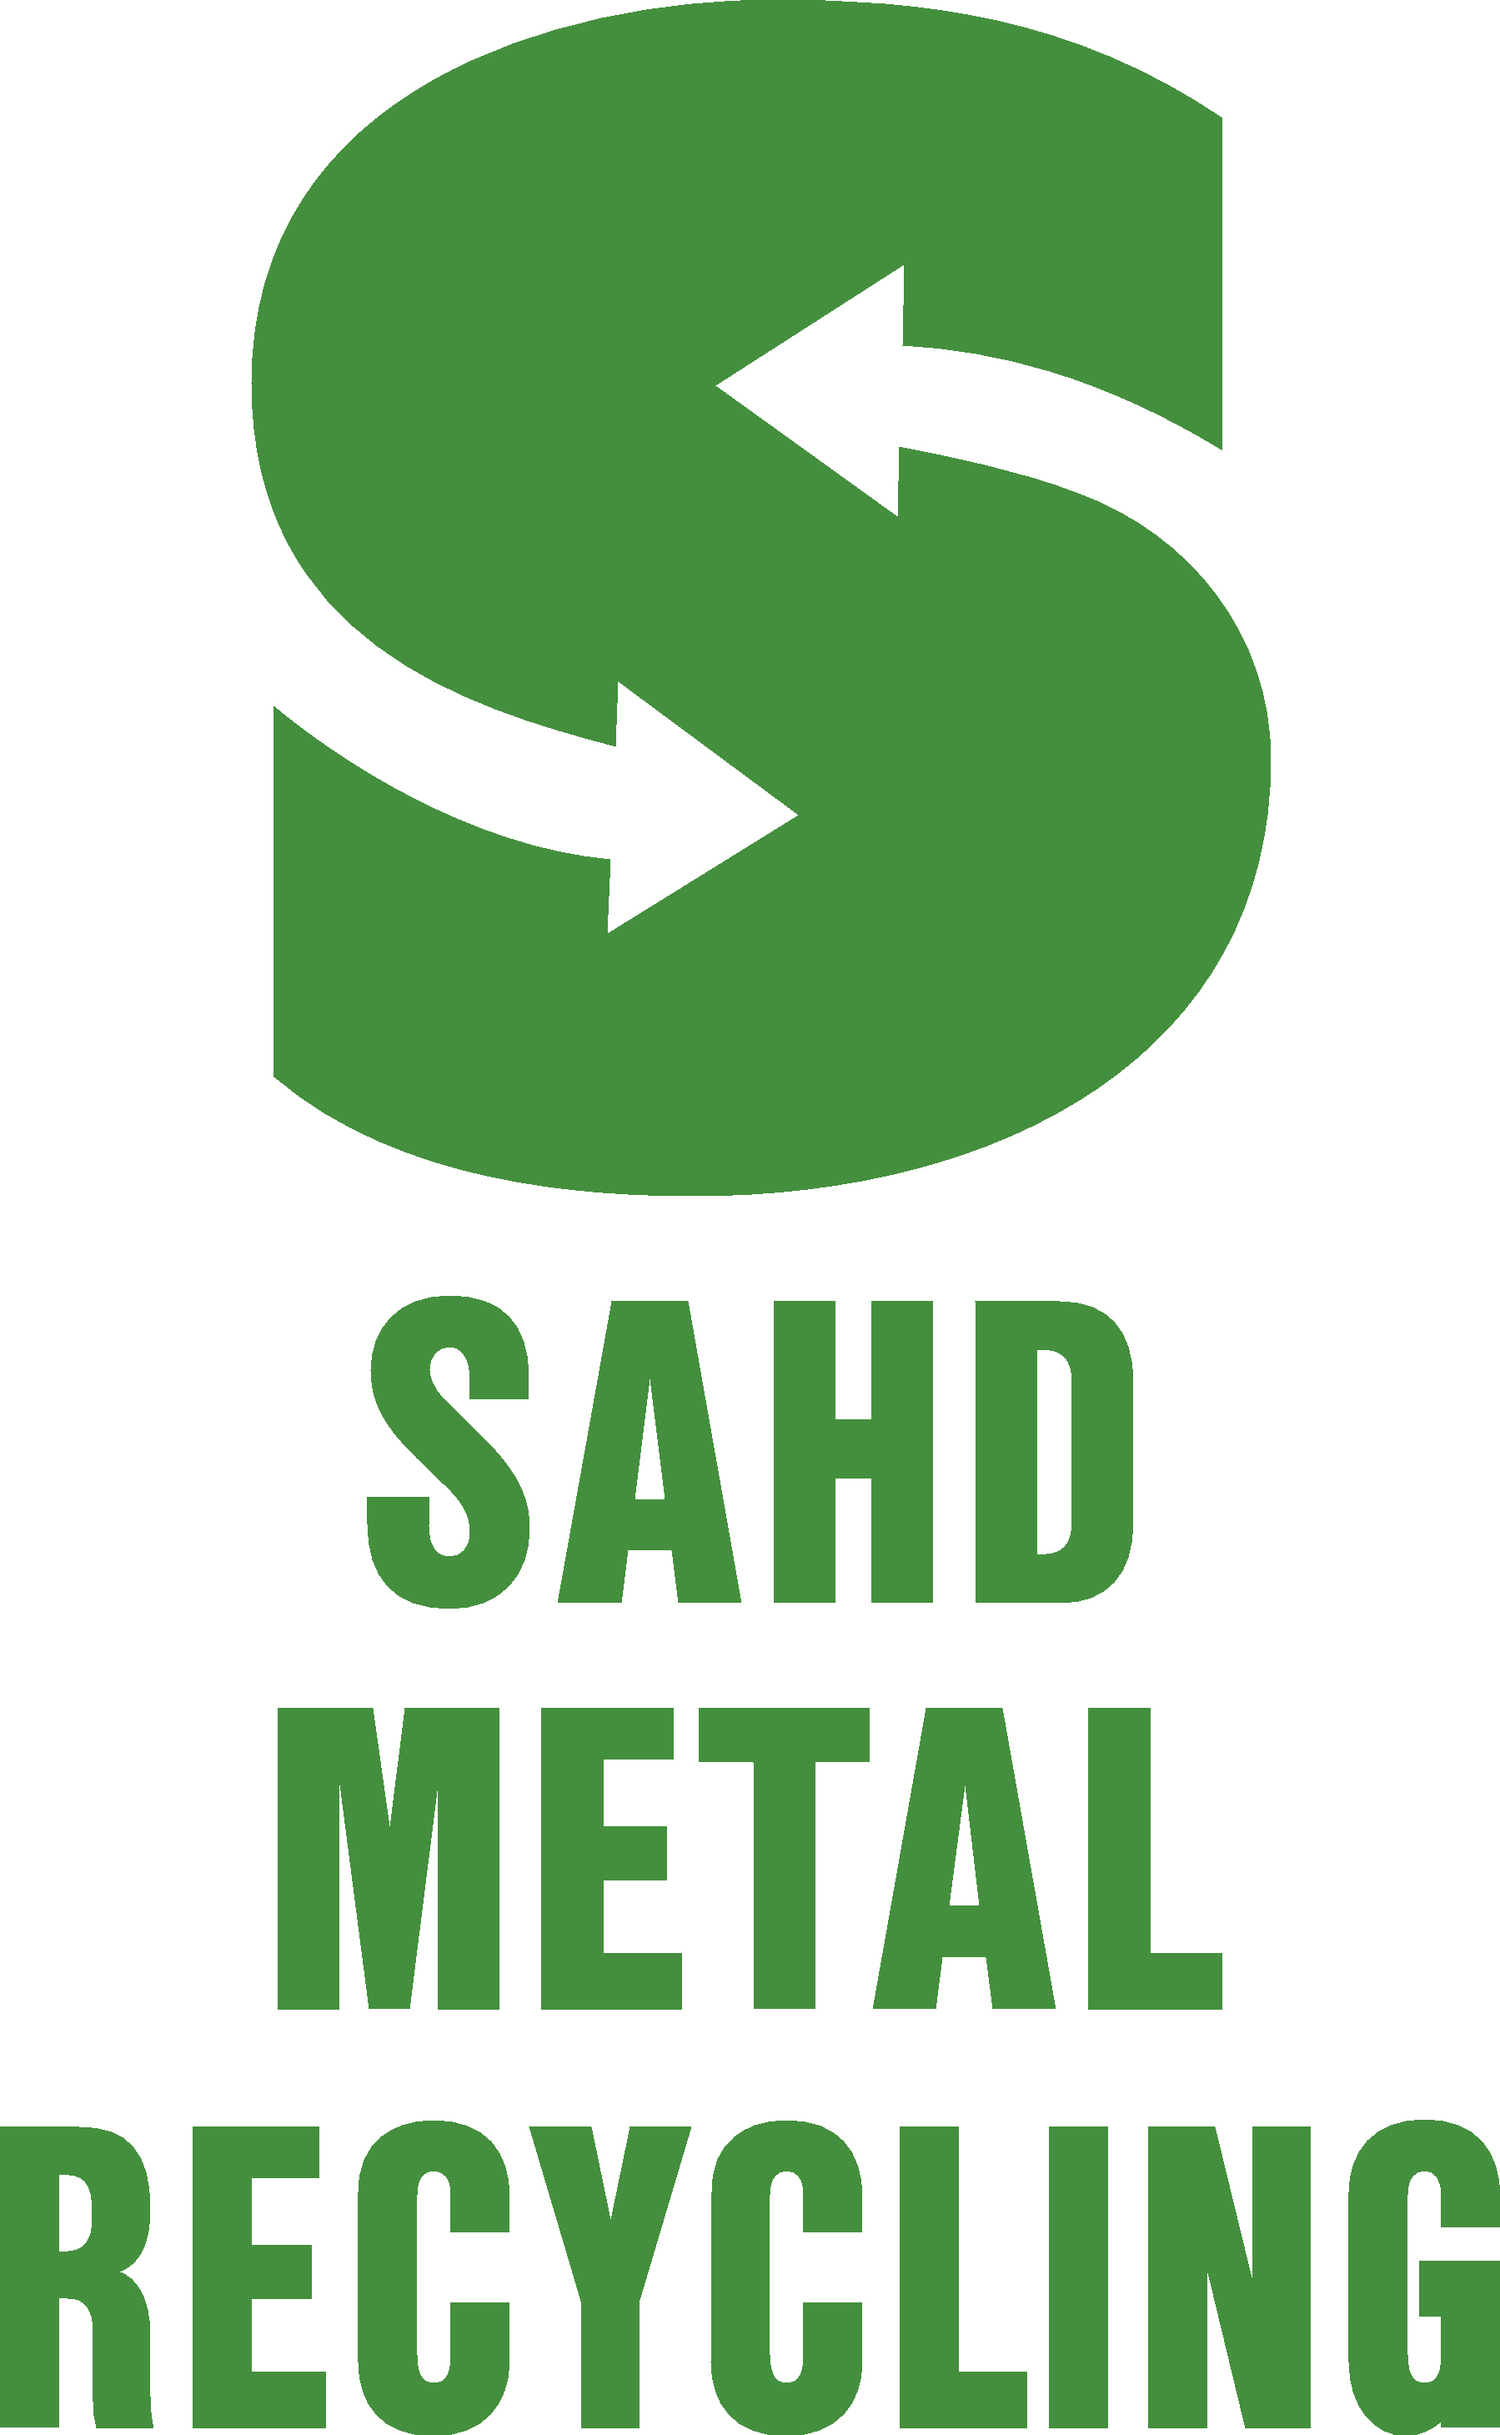 Sahd Metal Recycling